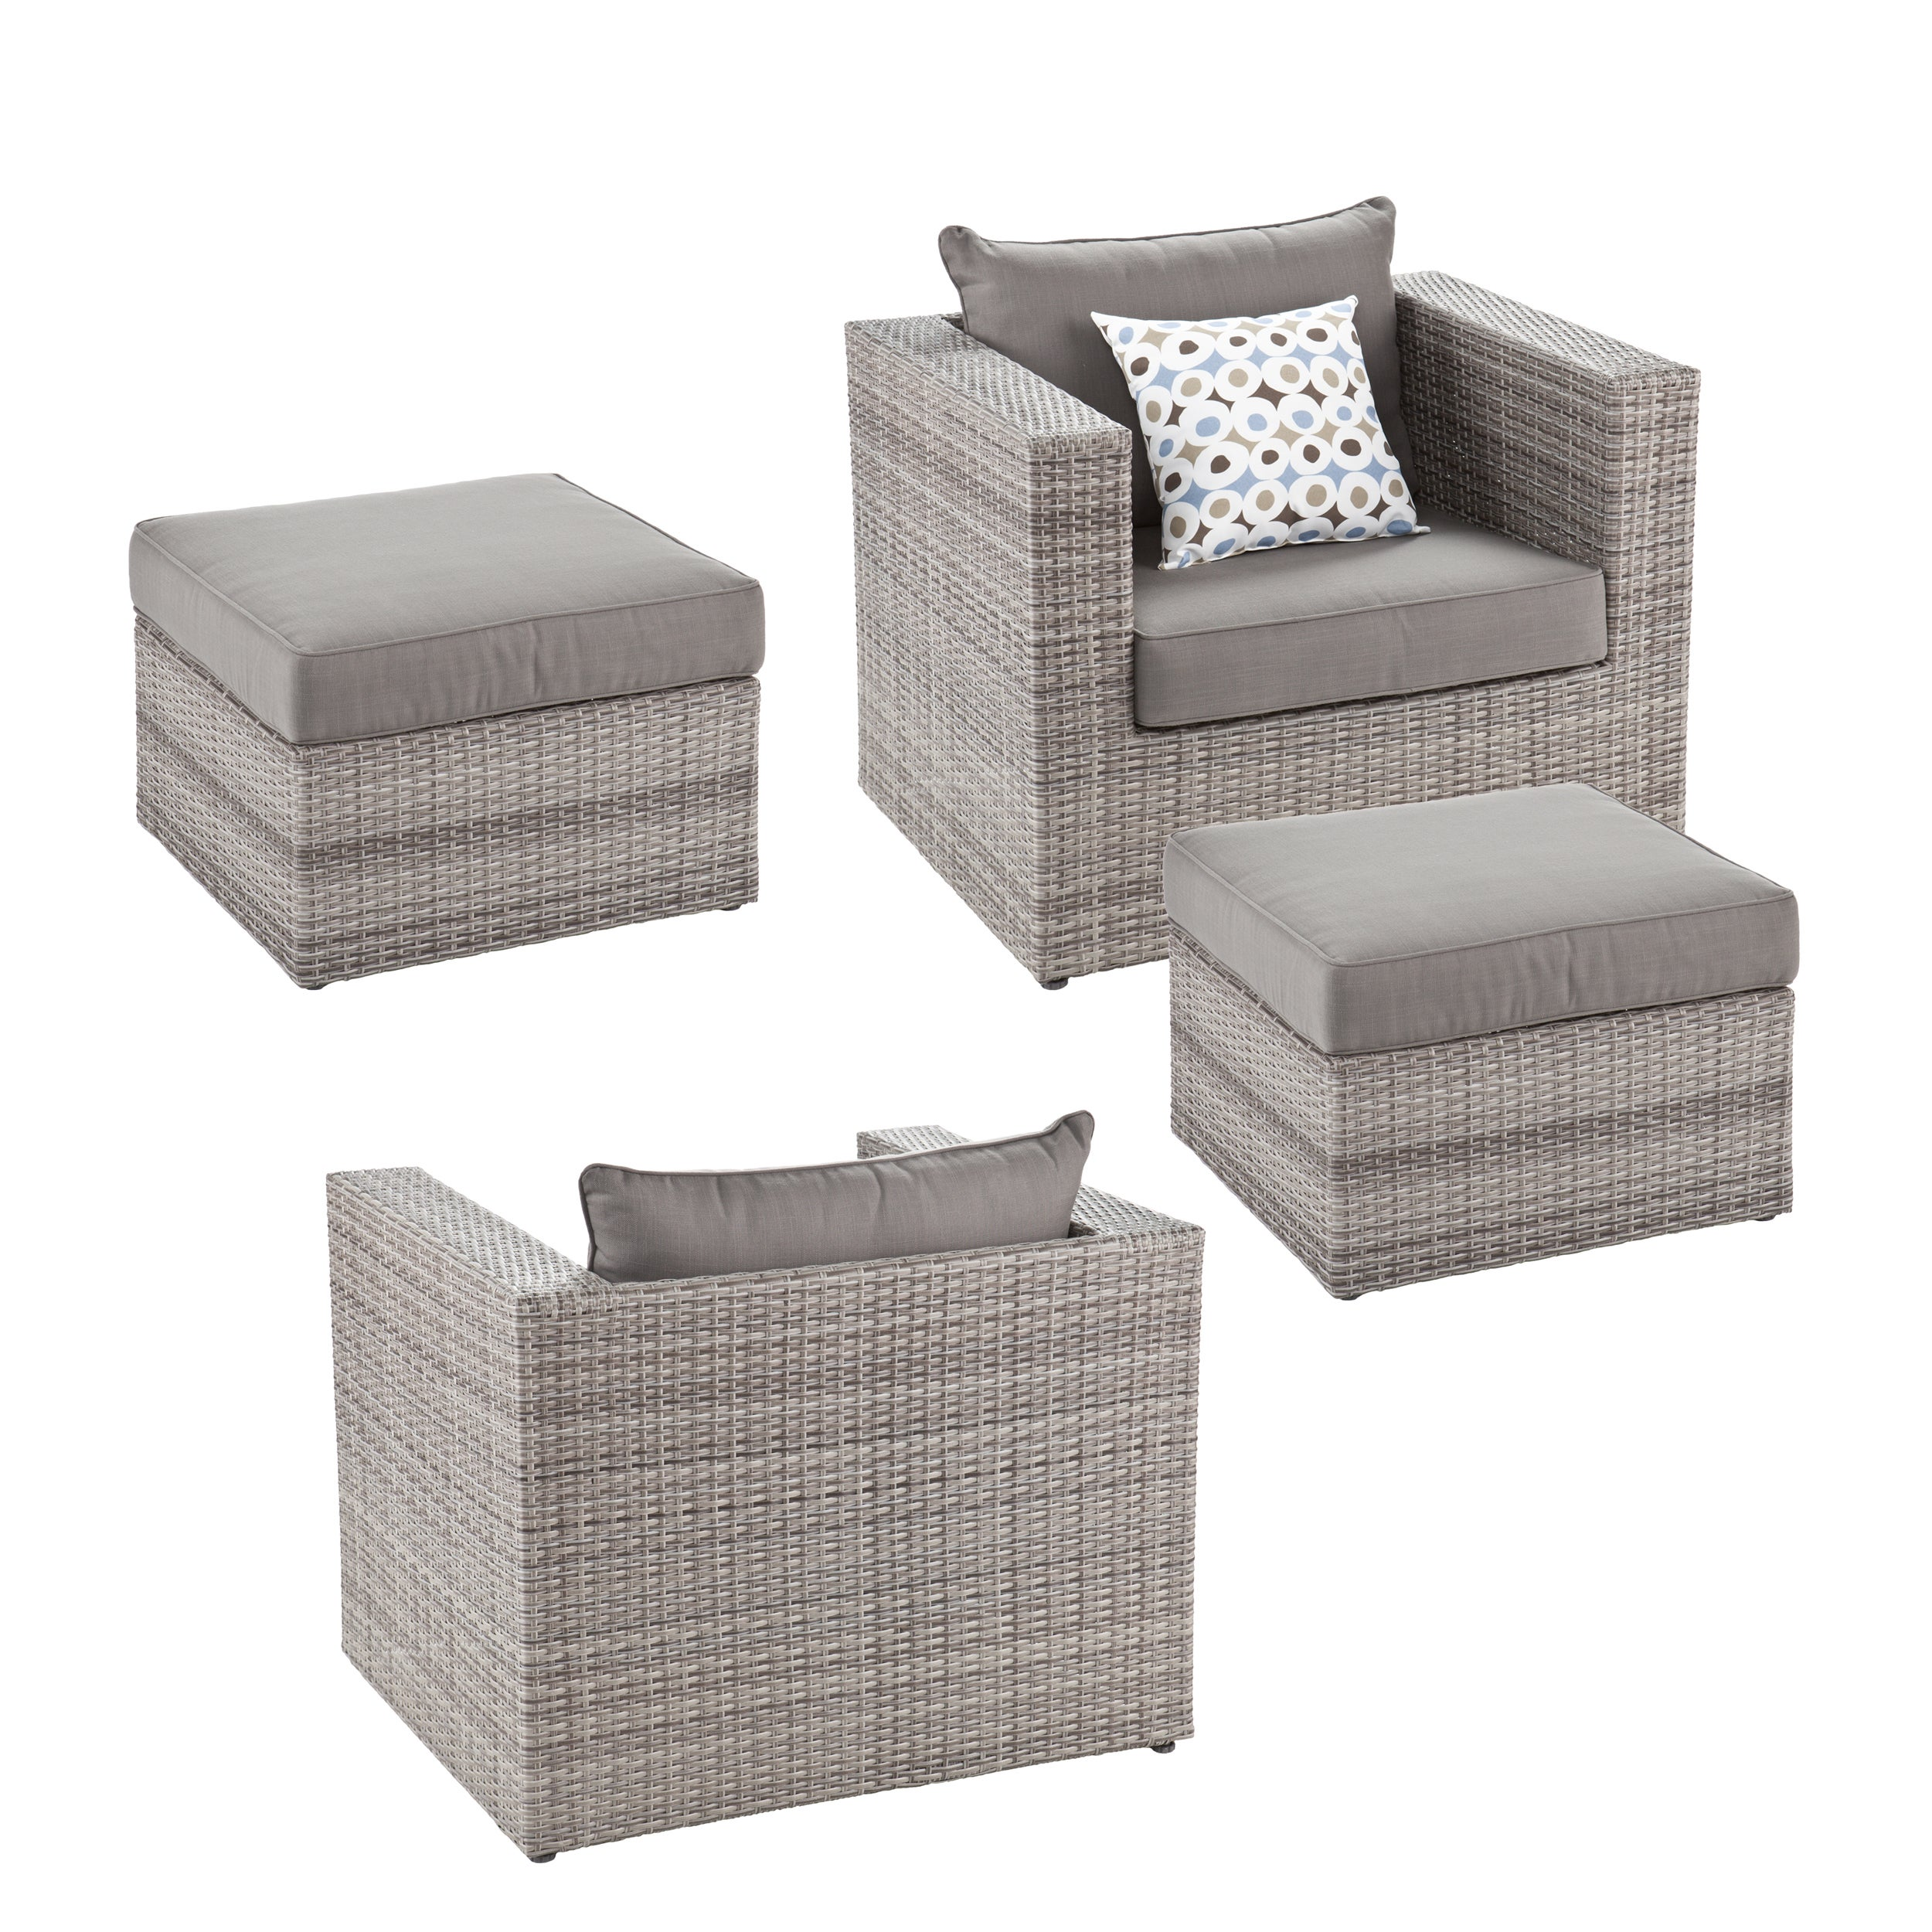 Gentil Shop Harper Blvd Brixton Outdoor Wicker Chair And Ottoman 4pc Set   On Sale    Free Shipping Today   Overstock.com   9121622